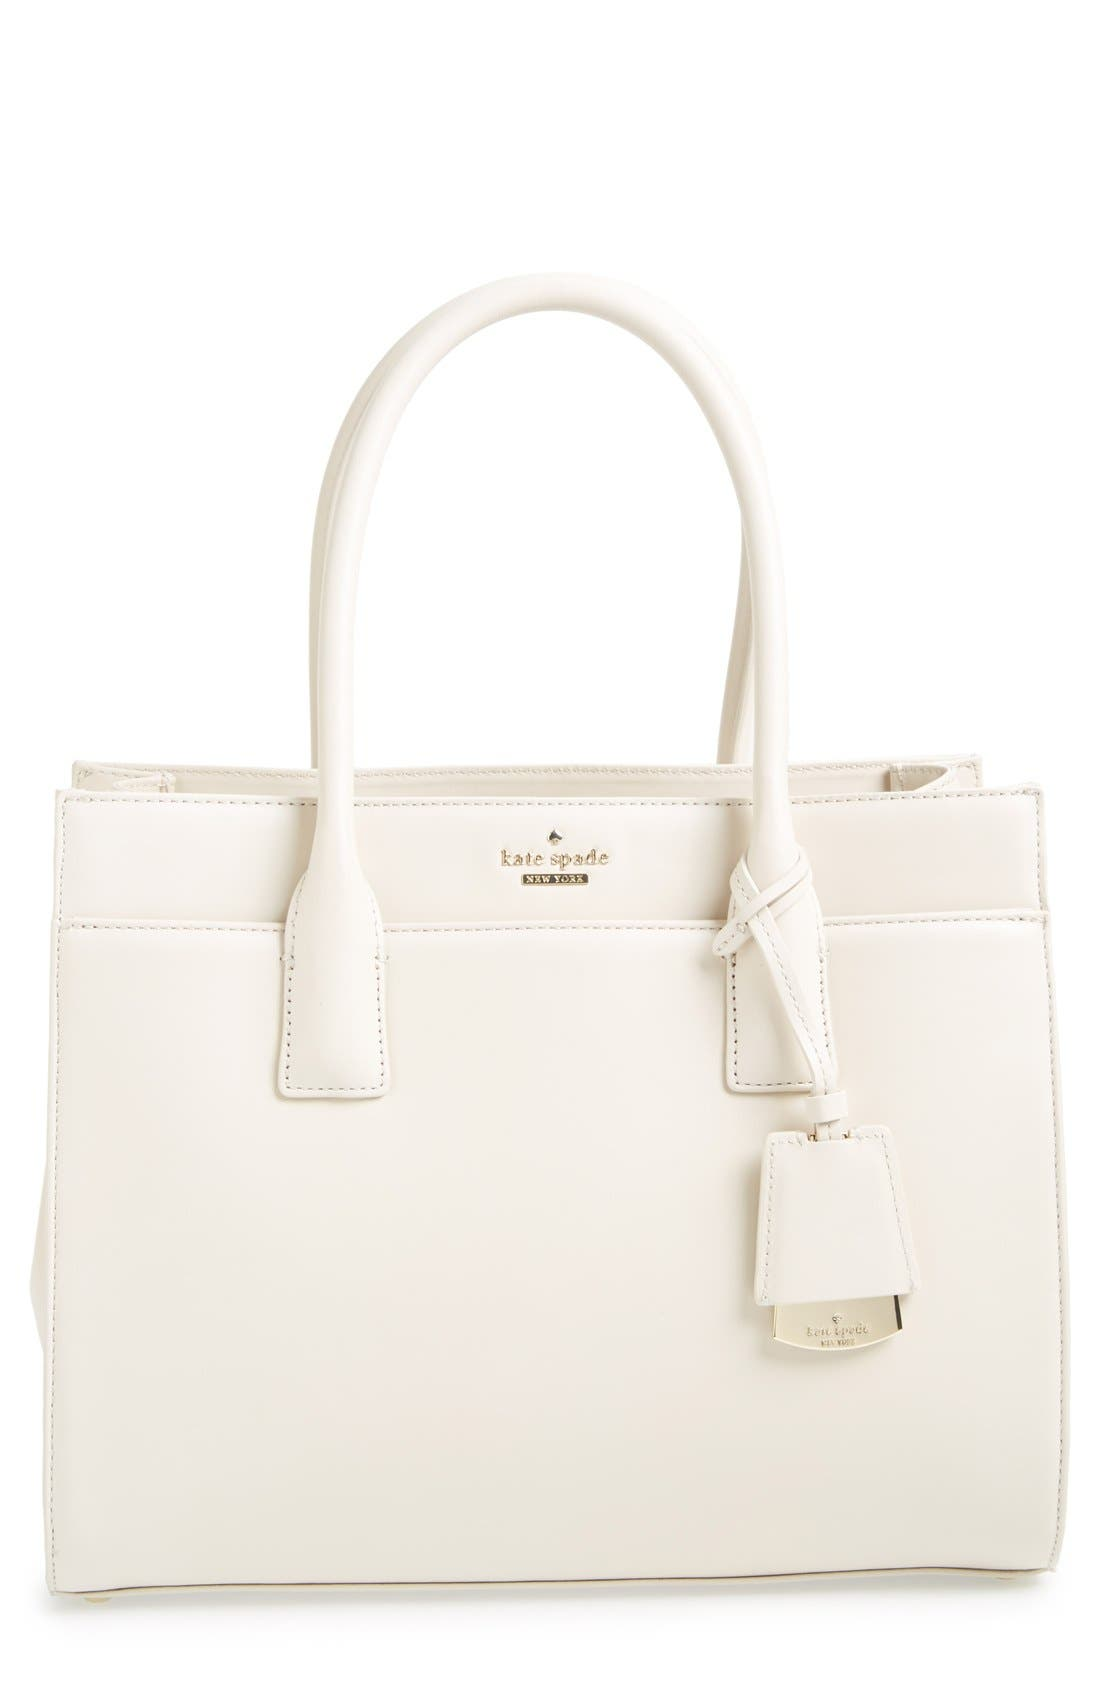 Alternate Image 1 Selected - kate spade new york 'lucca drive - candace' leather tote